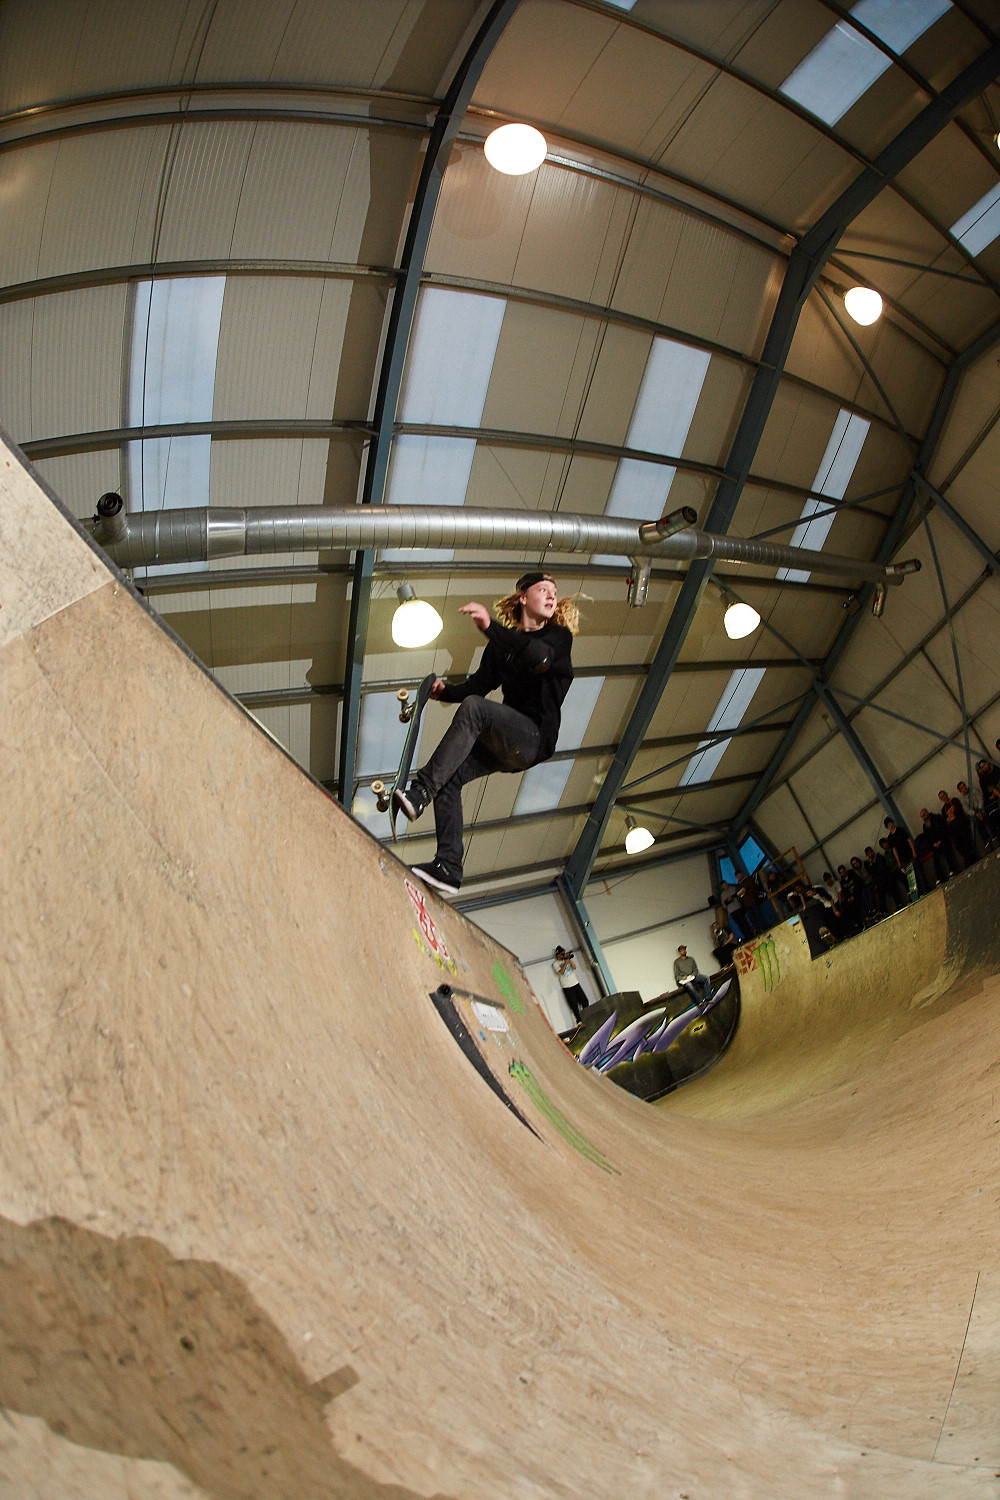 Mini Ramp Champs 20 1 1.jpg